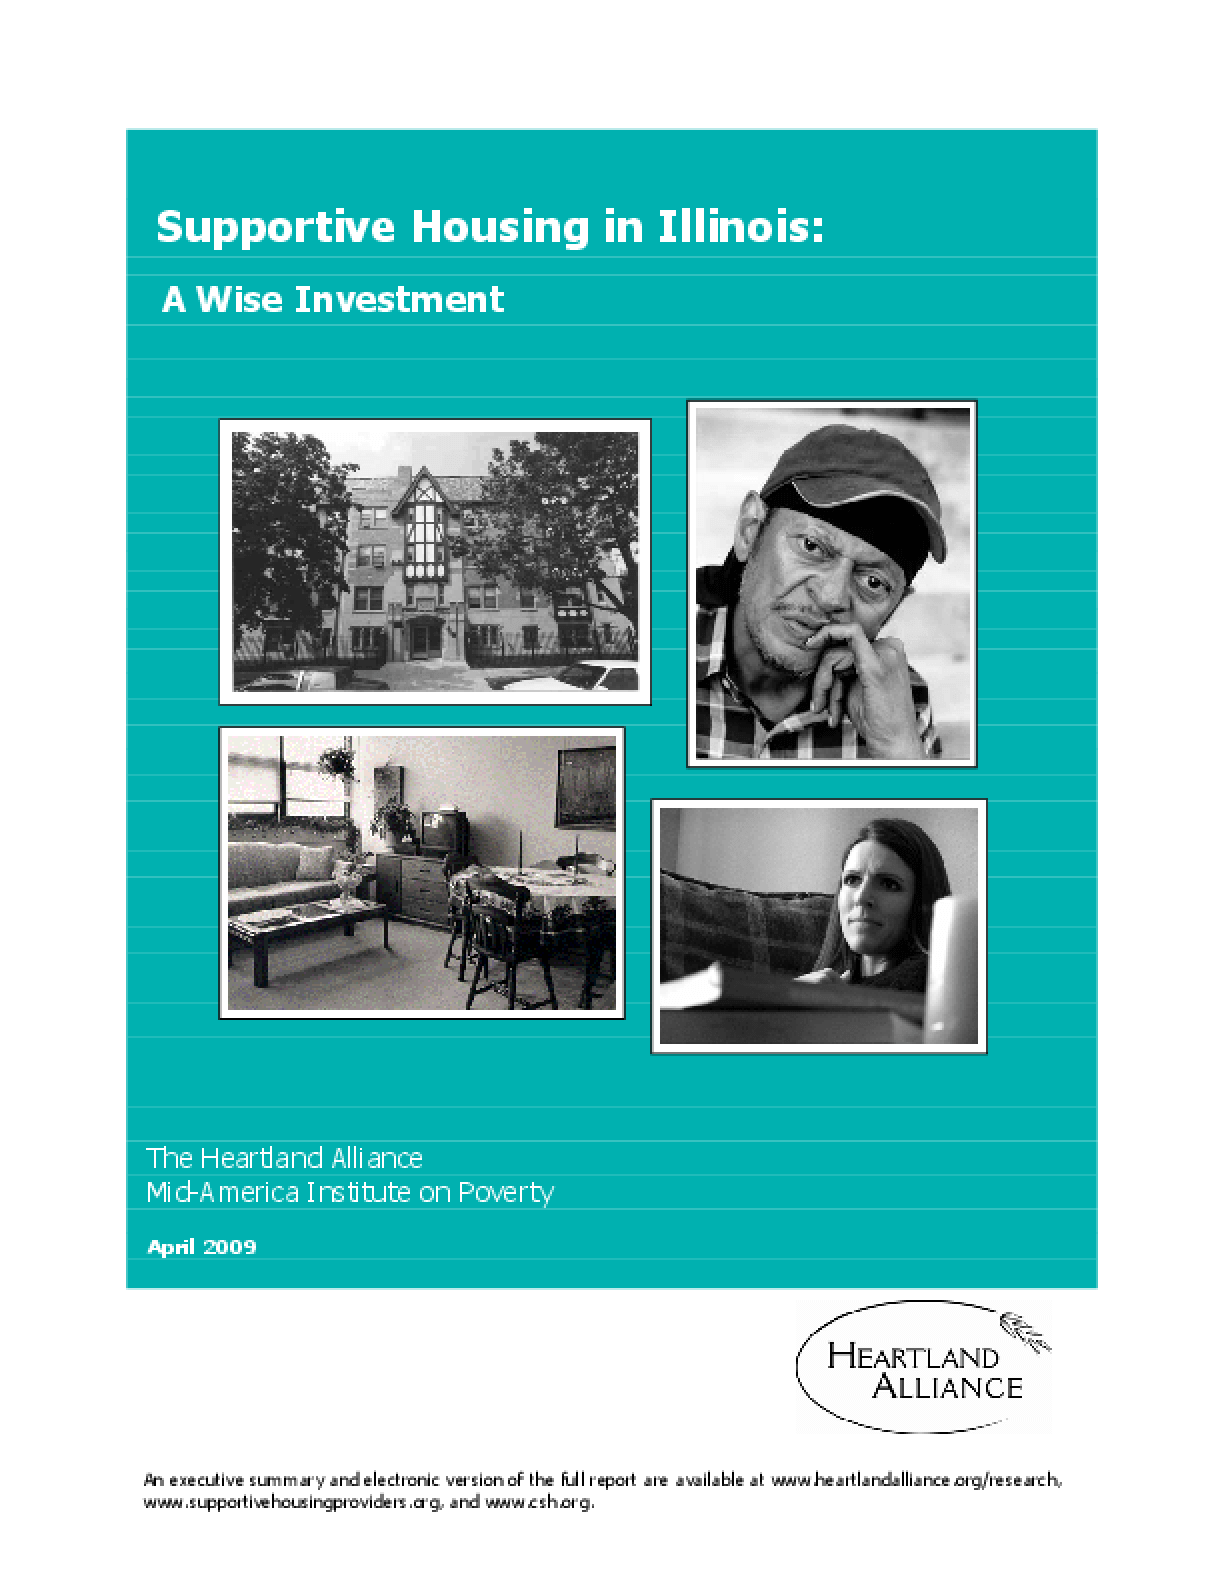 Supportive Housing in Illinois: A Wise Investment